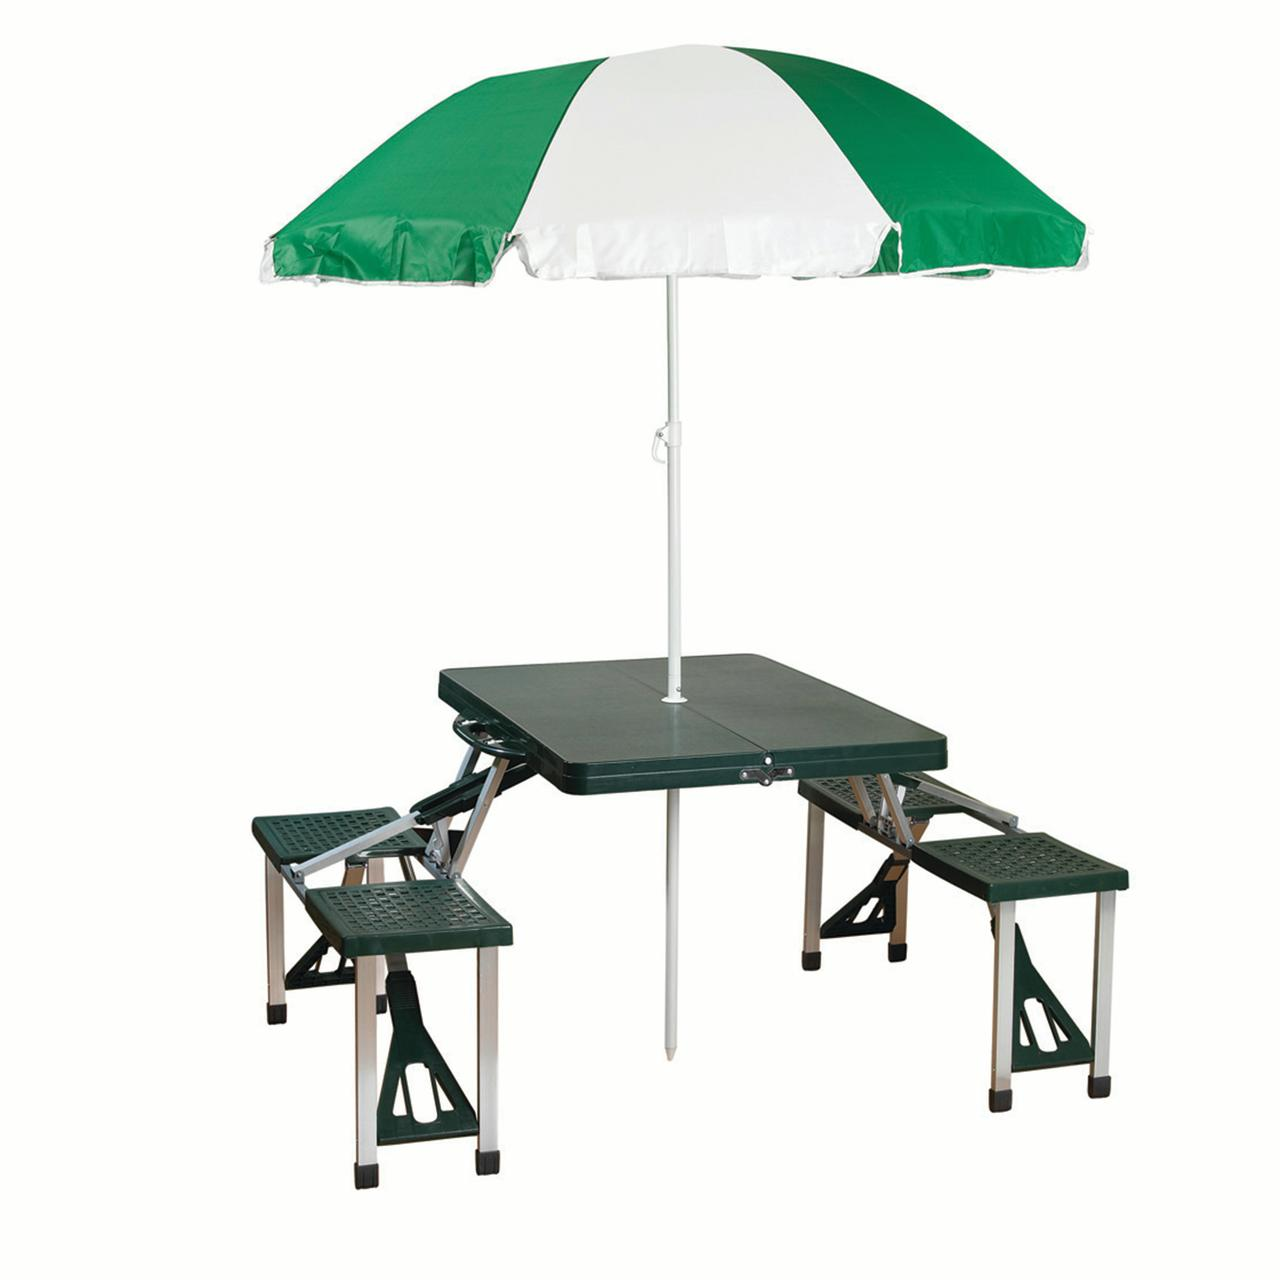 Stansport Camp Picnic Table And Umbrella Combo Pack